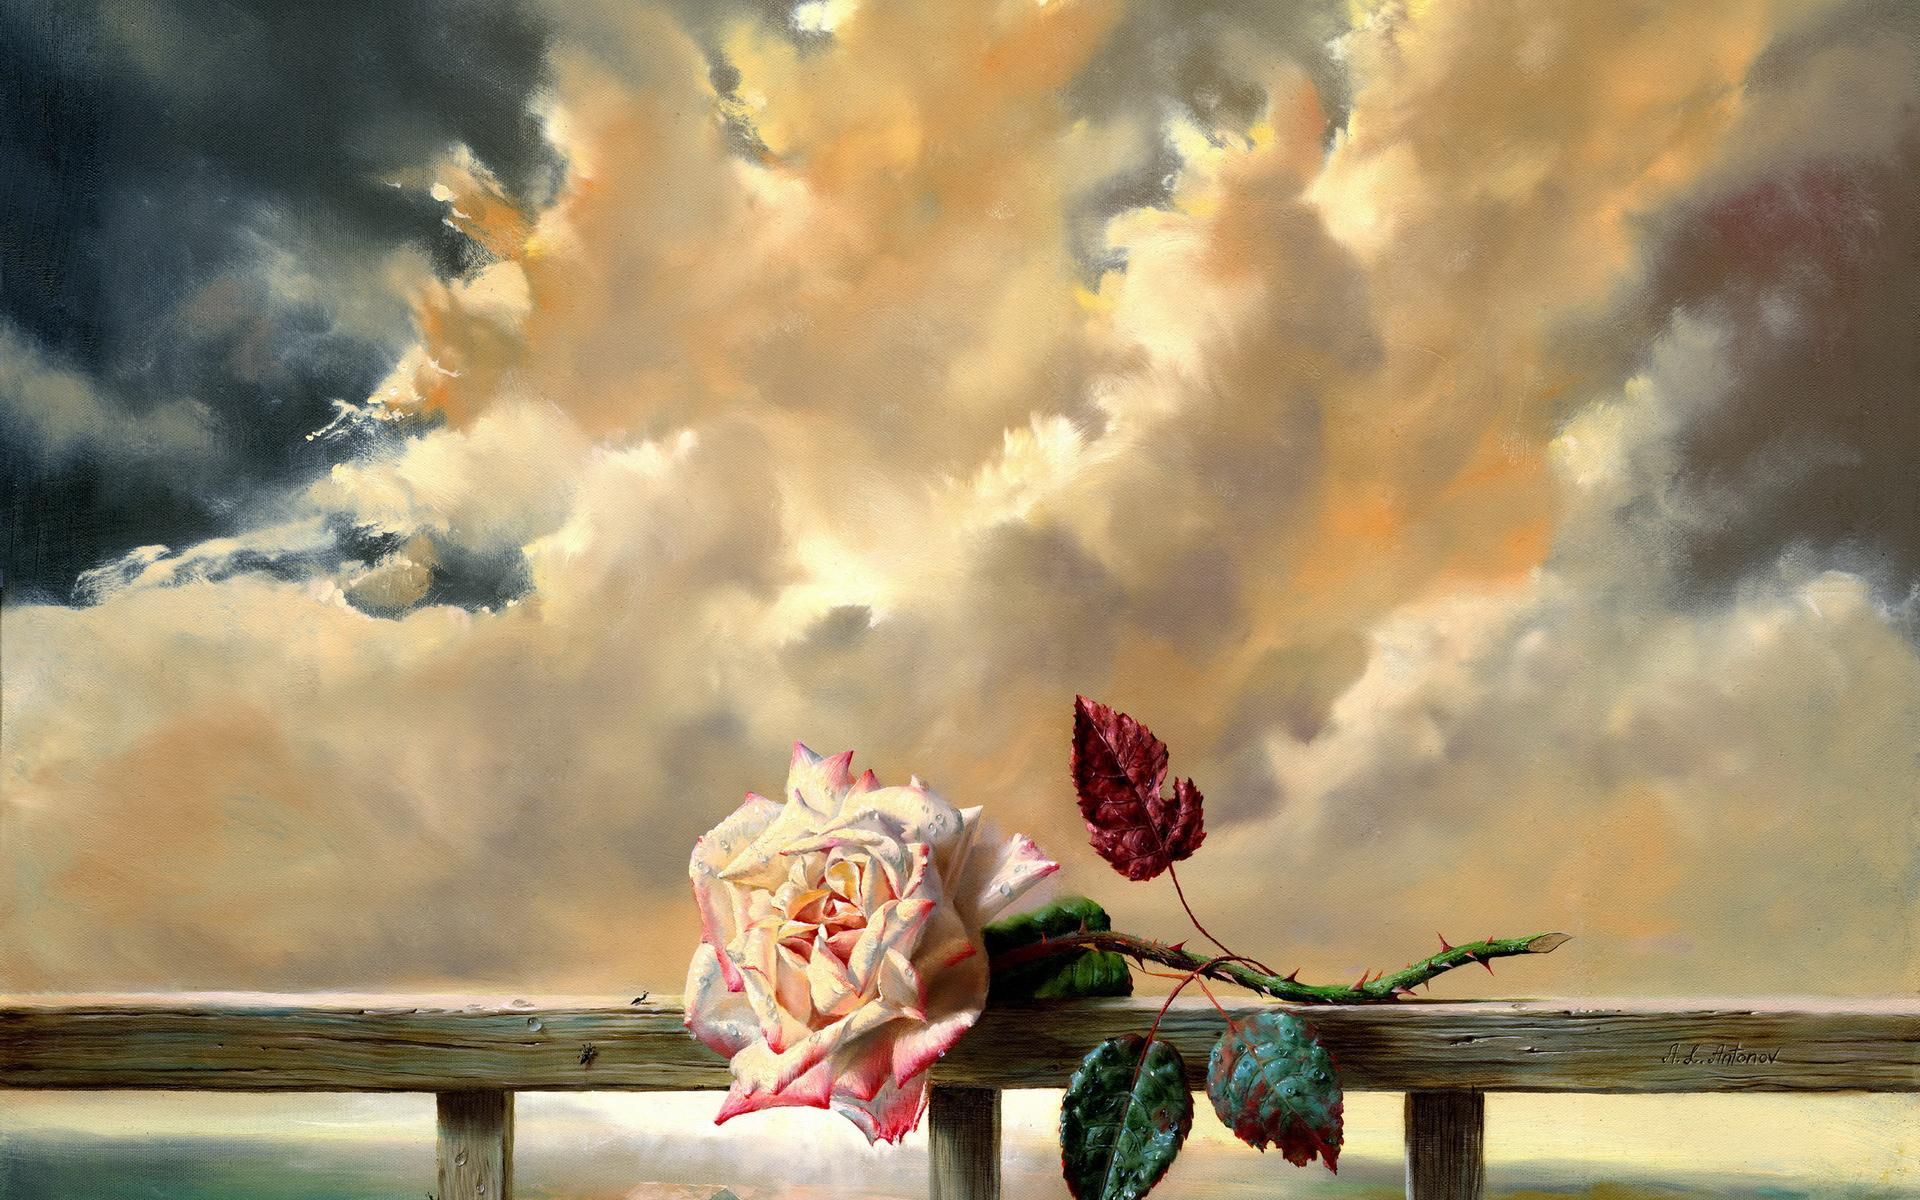 Love couple Painting Wallpaper : Mood flowers sky clouds bokeh art paintings love romance wallpaper 1920x1200 28243 WallpaperUP